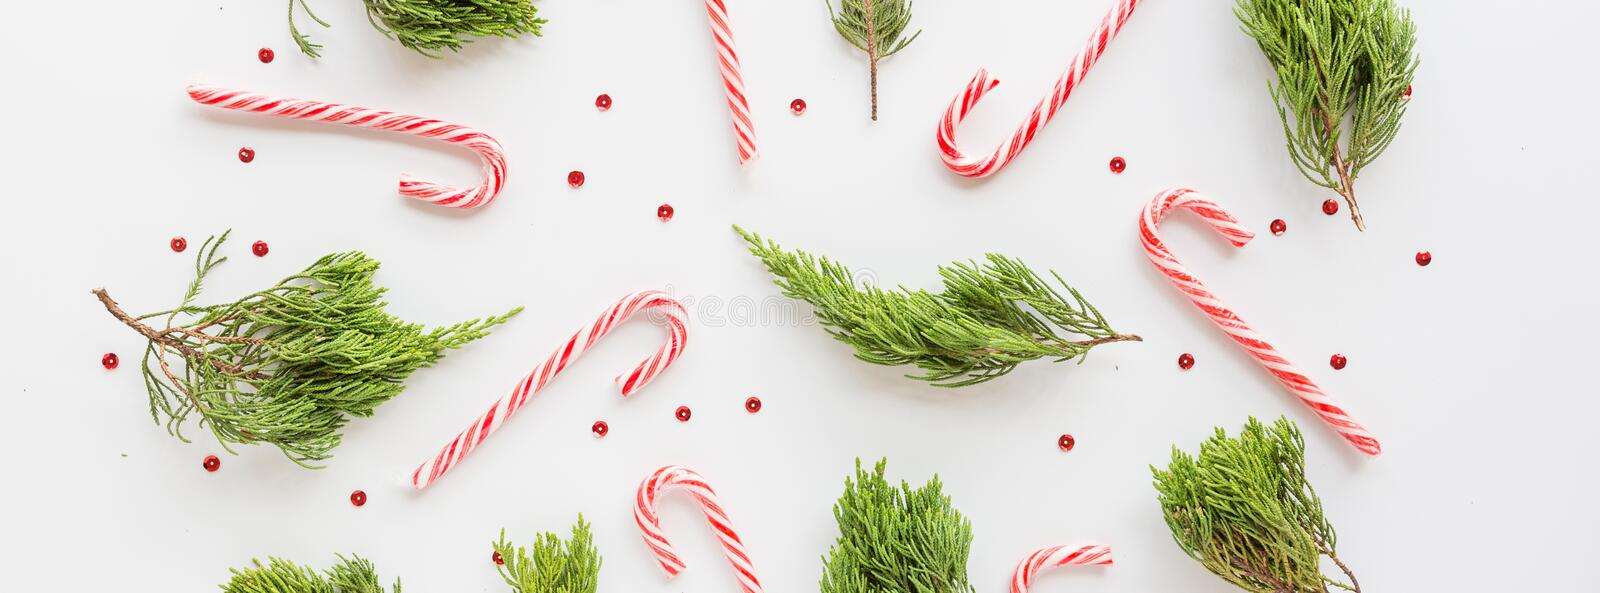 Christmas fir branches and lollipop canes on white. new year concept. Horizontal banner for web design. Greeting card, xmas royalty free stock image